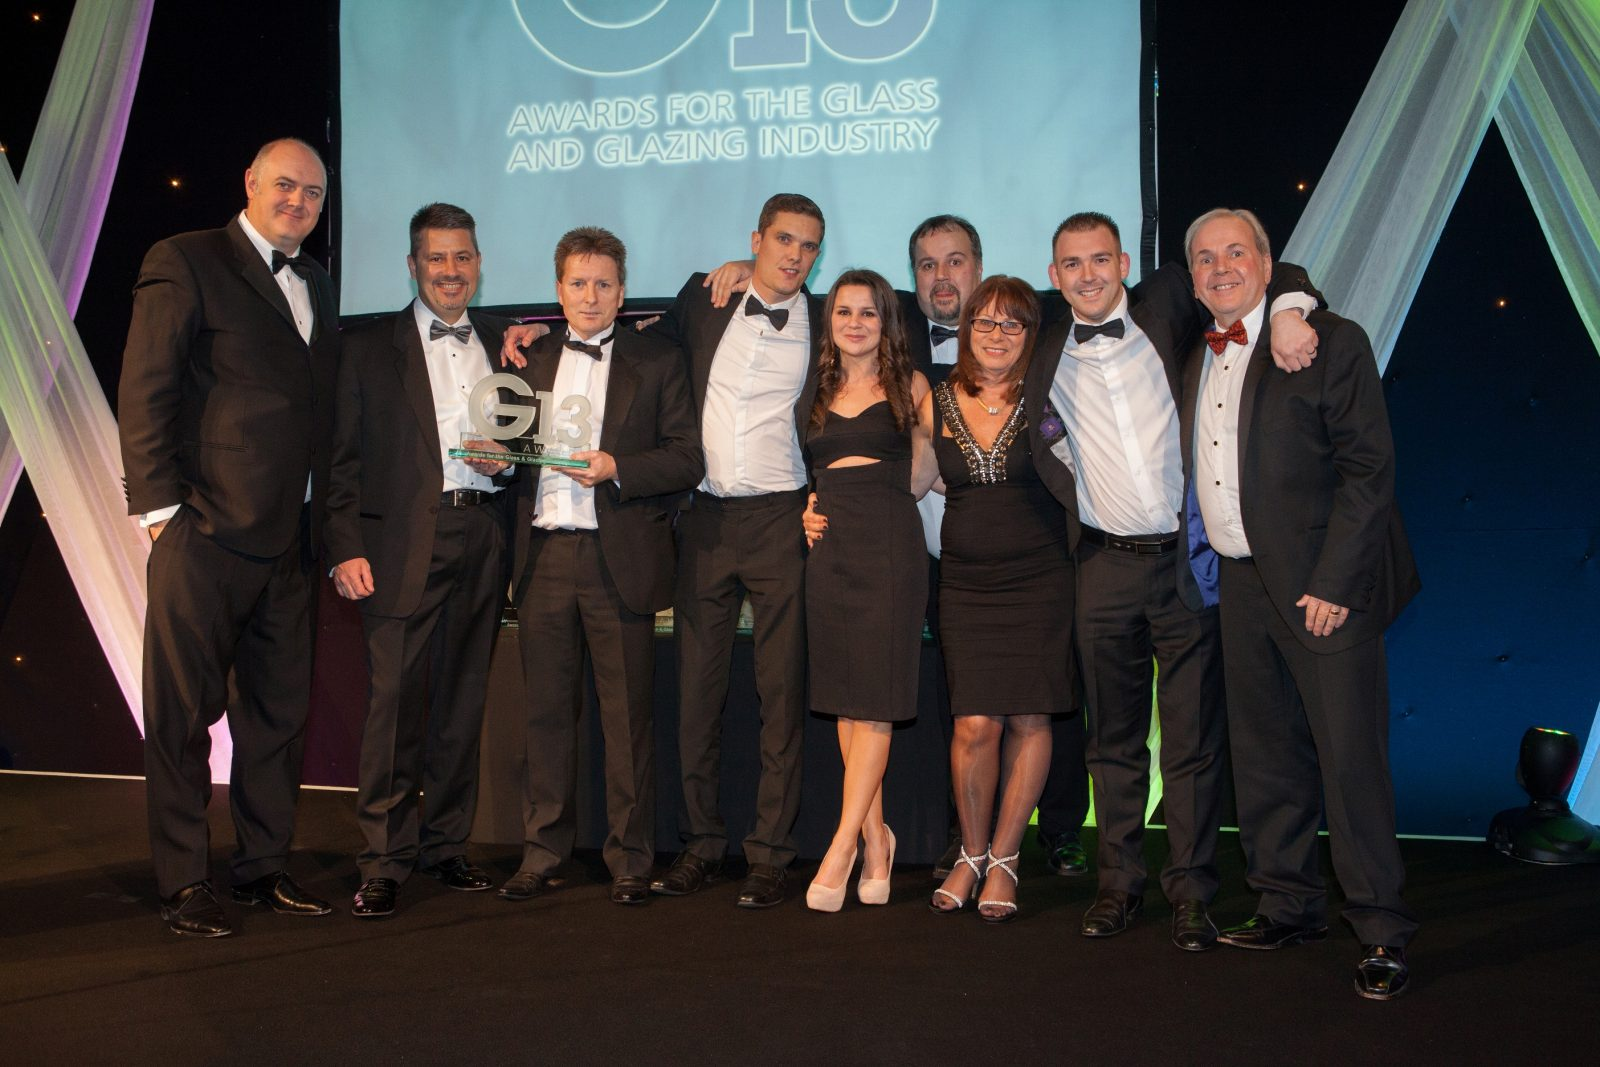 Roseview at the G13 awards